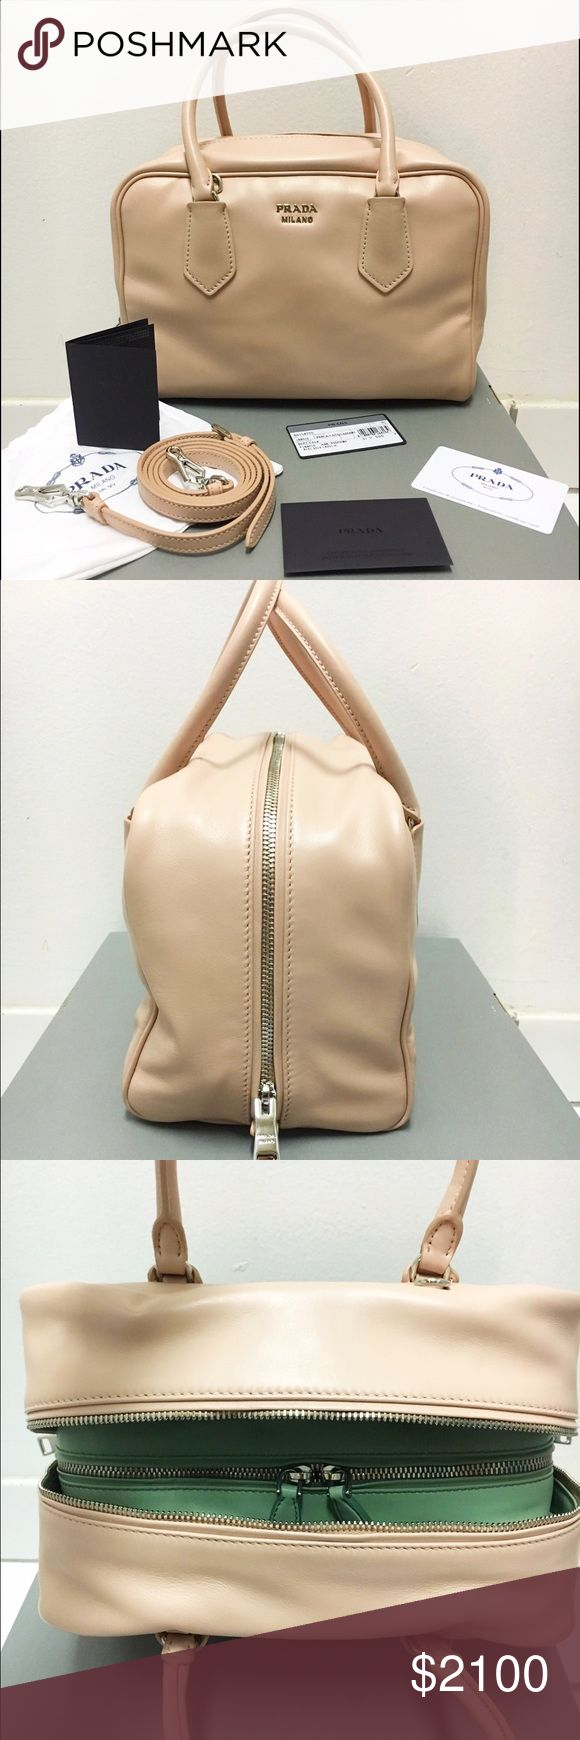 """PRADA Supple Calf Leather Satchel This unique Prada satchel is from the higher end of the design house's brand. It's has smooth supple leather and double pocketed interior in the colors Pesci and Aquamarine (Light Pink & Pistachio).   BRAND NEW. Purchased on MyHabit by Amazon on 5/9/16.  Unique satchel silhouette features 2 interior compartments with a zip and 3 slip pockets, 4.5"""" handle drop with optional adjustable shoulder strap with drop of 22"""".  Comes w/dusters, shoulder strap…"""